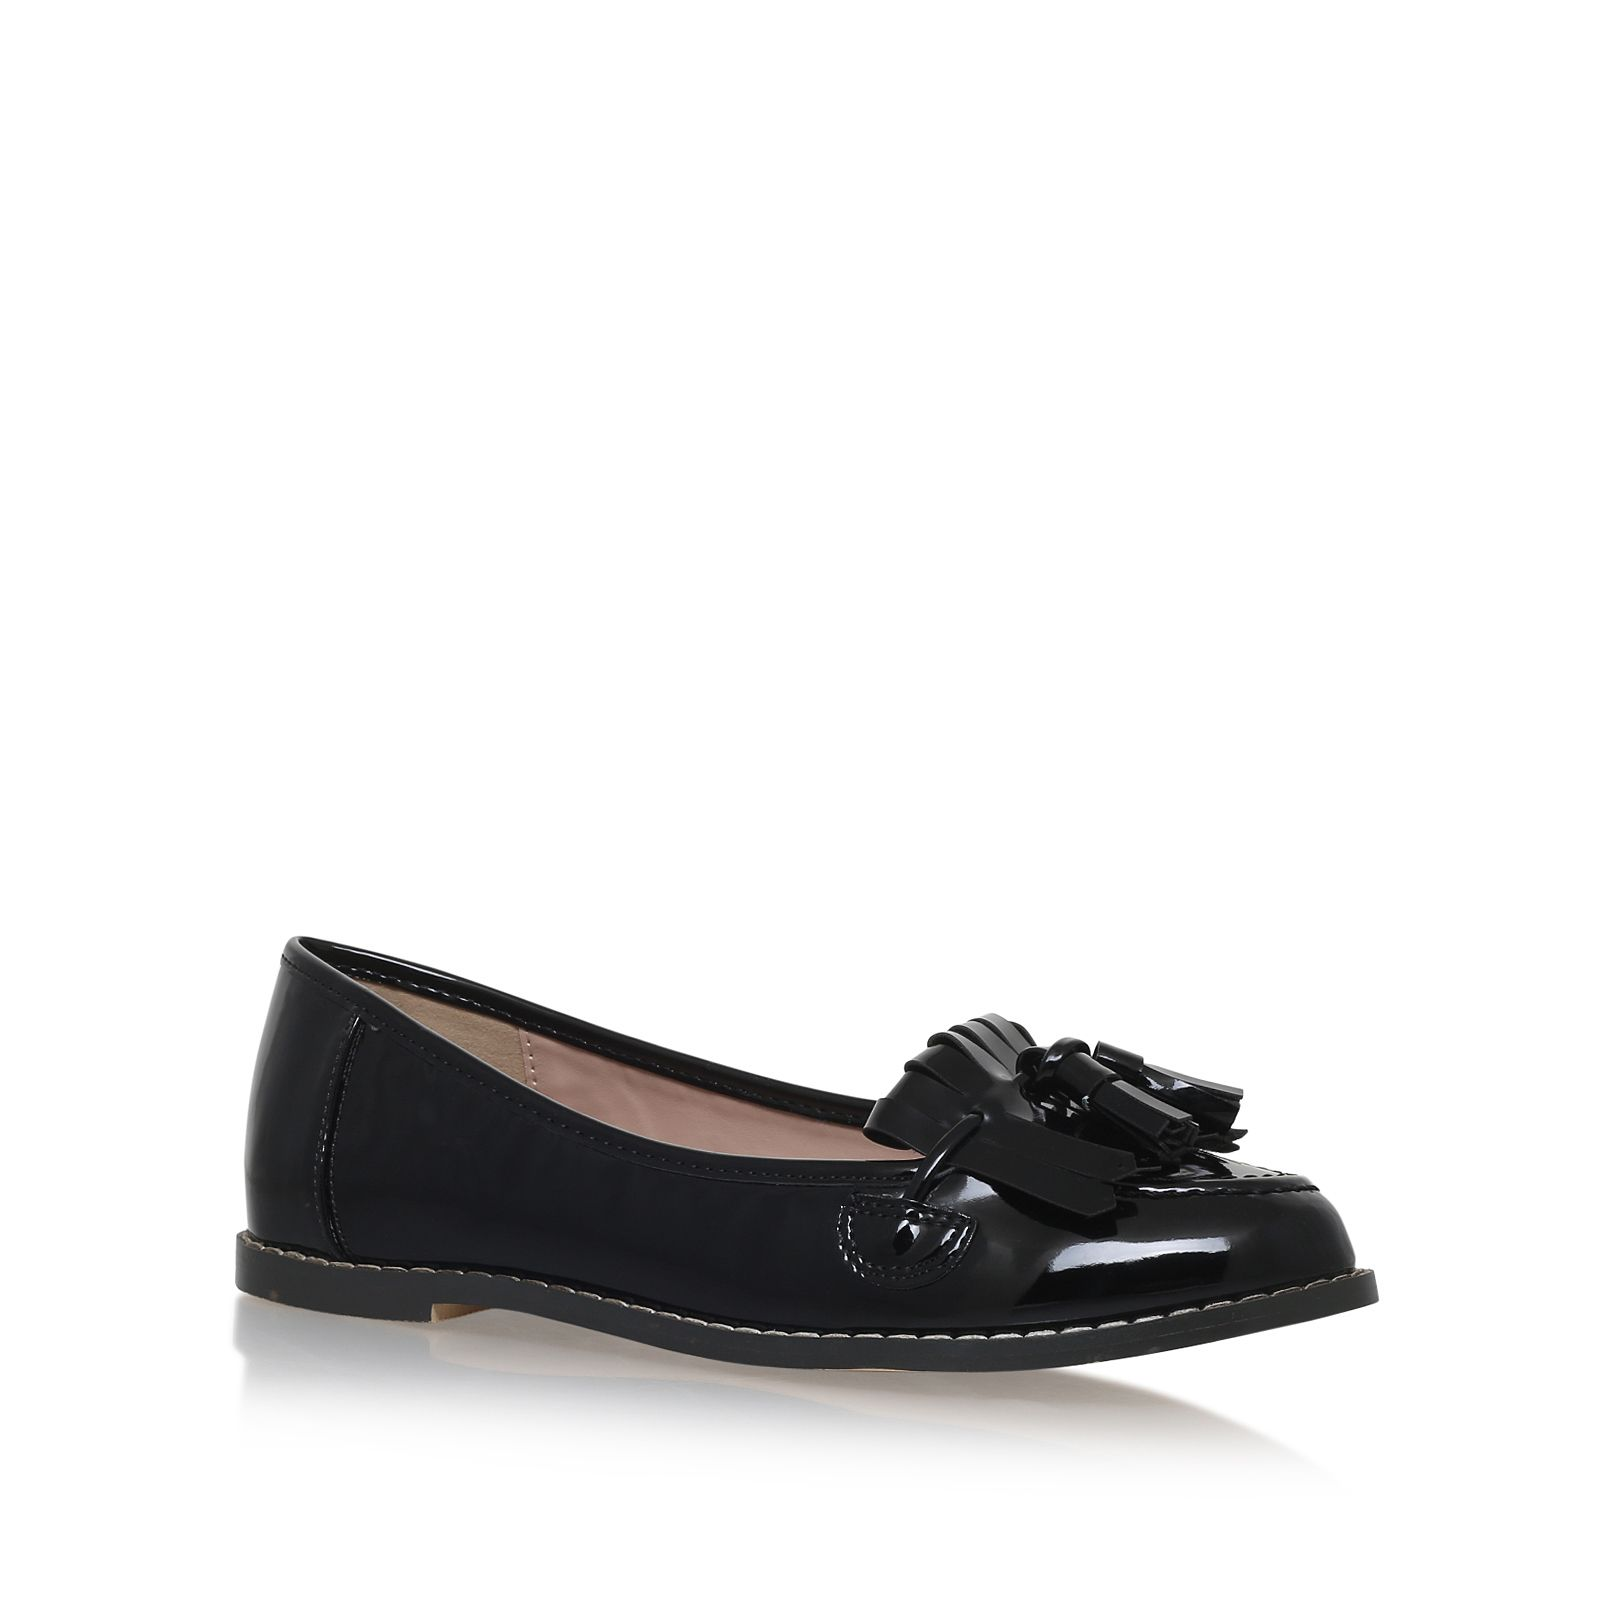 Carvela black loafer shoes house of fraser for Housse of fraser